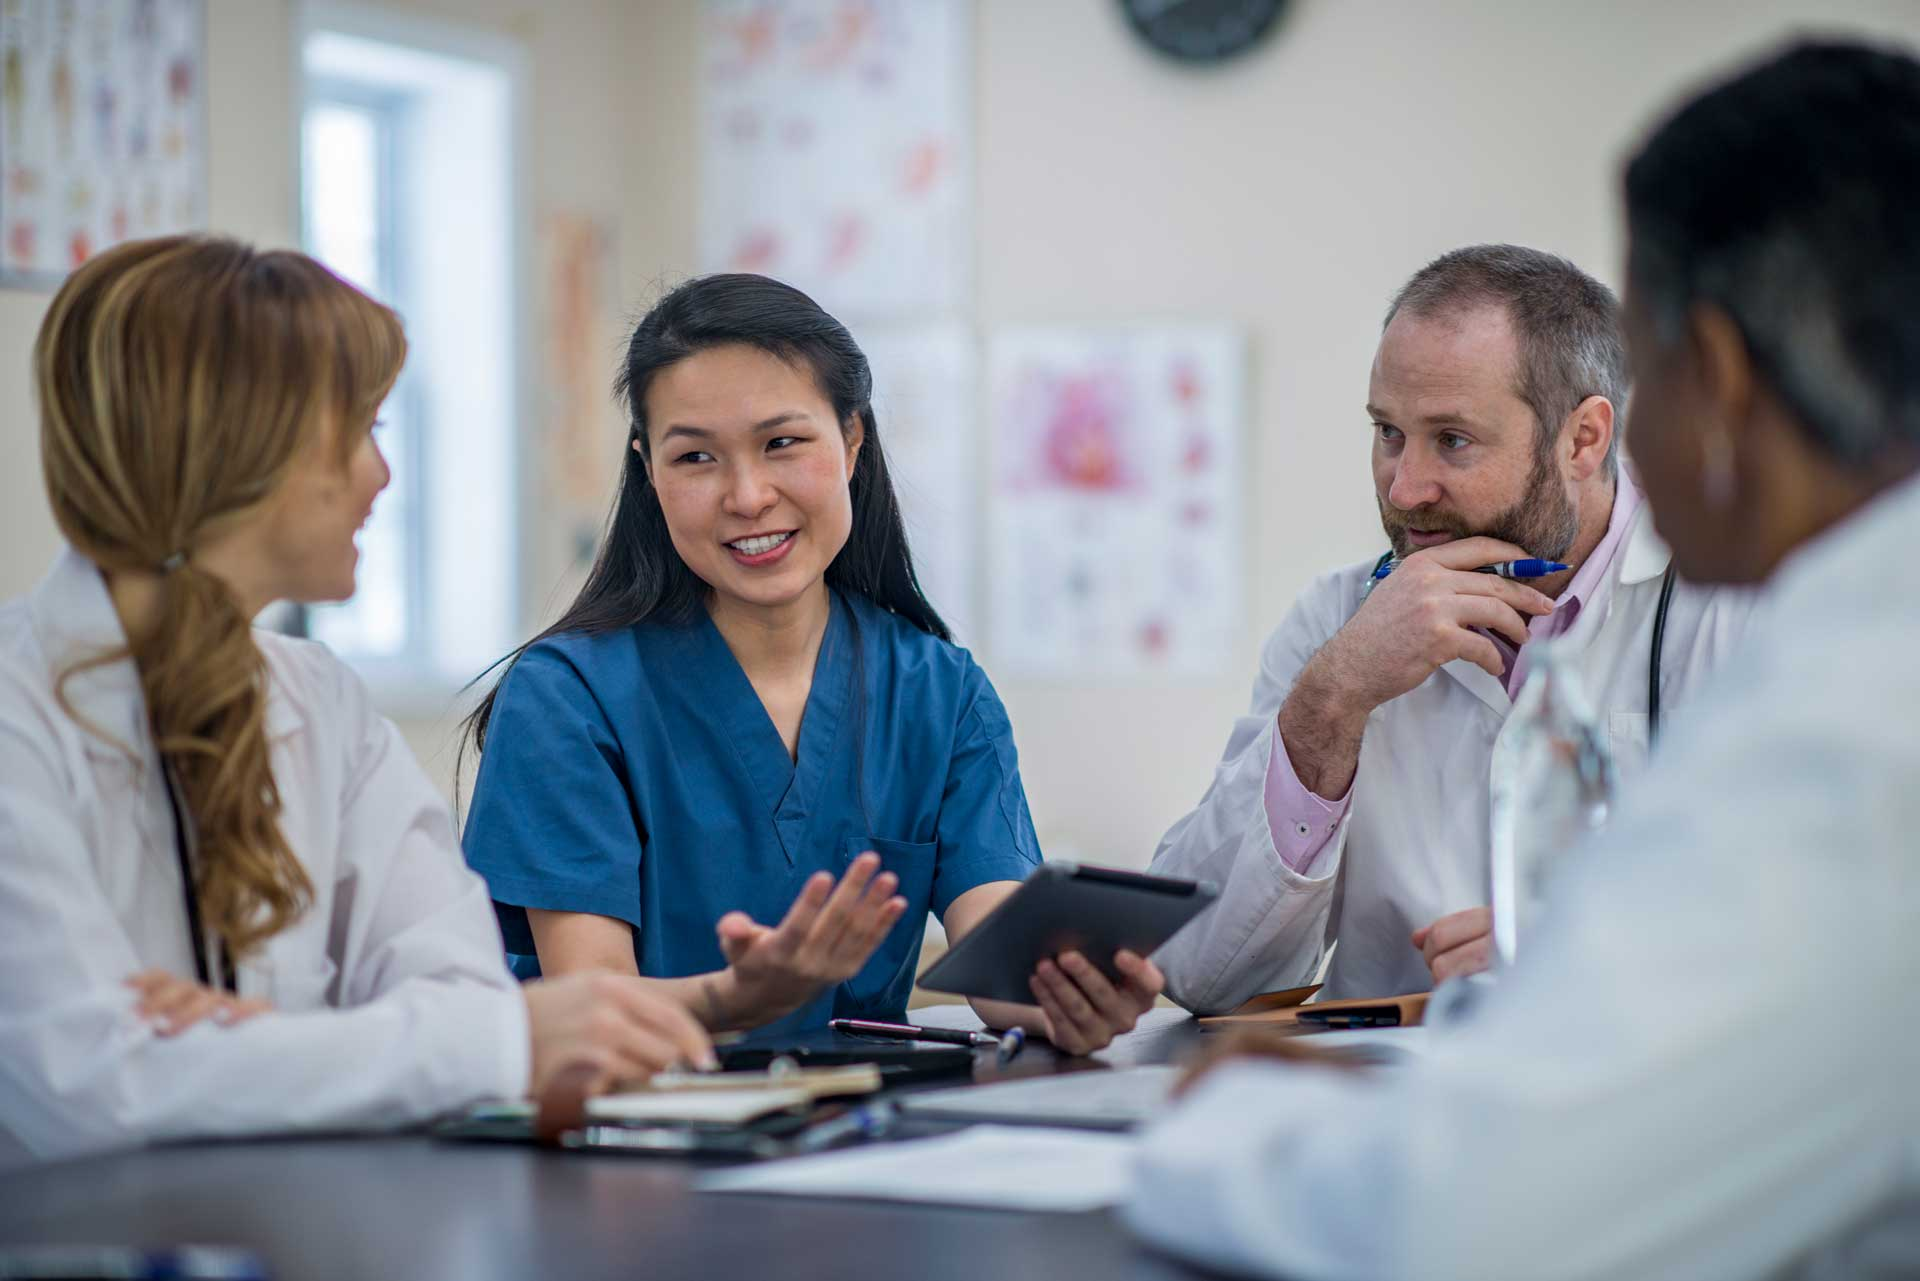 a group of doctors and nurses having a discussion using sentact digital platform